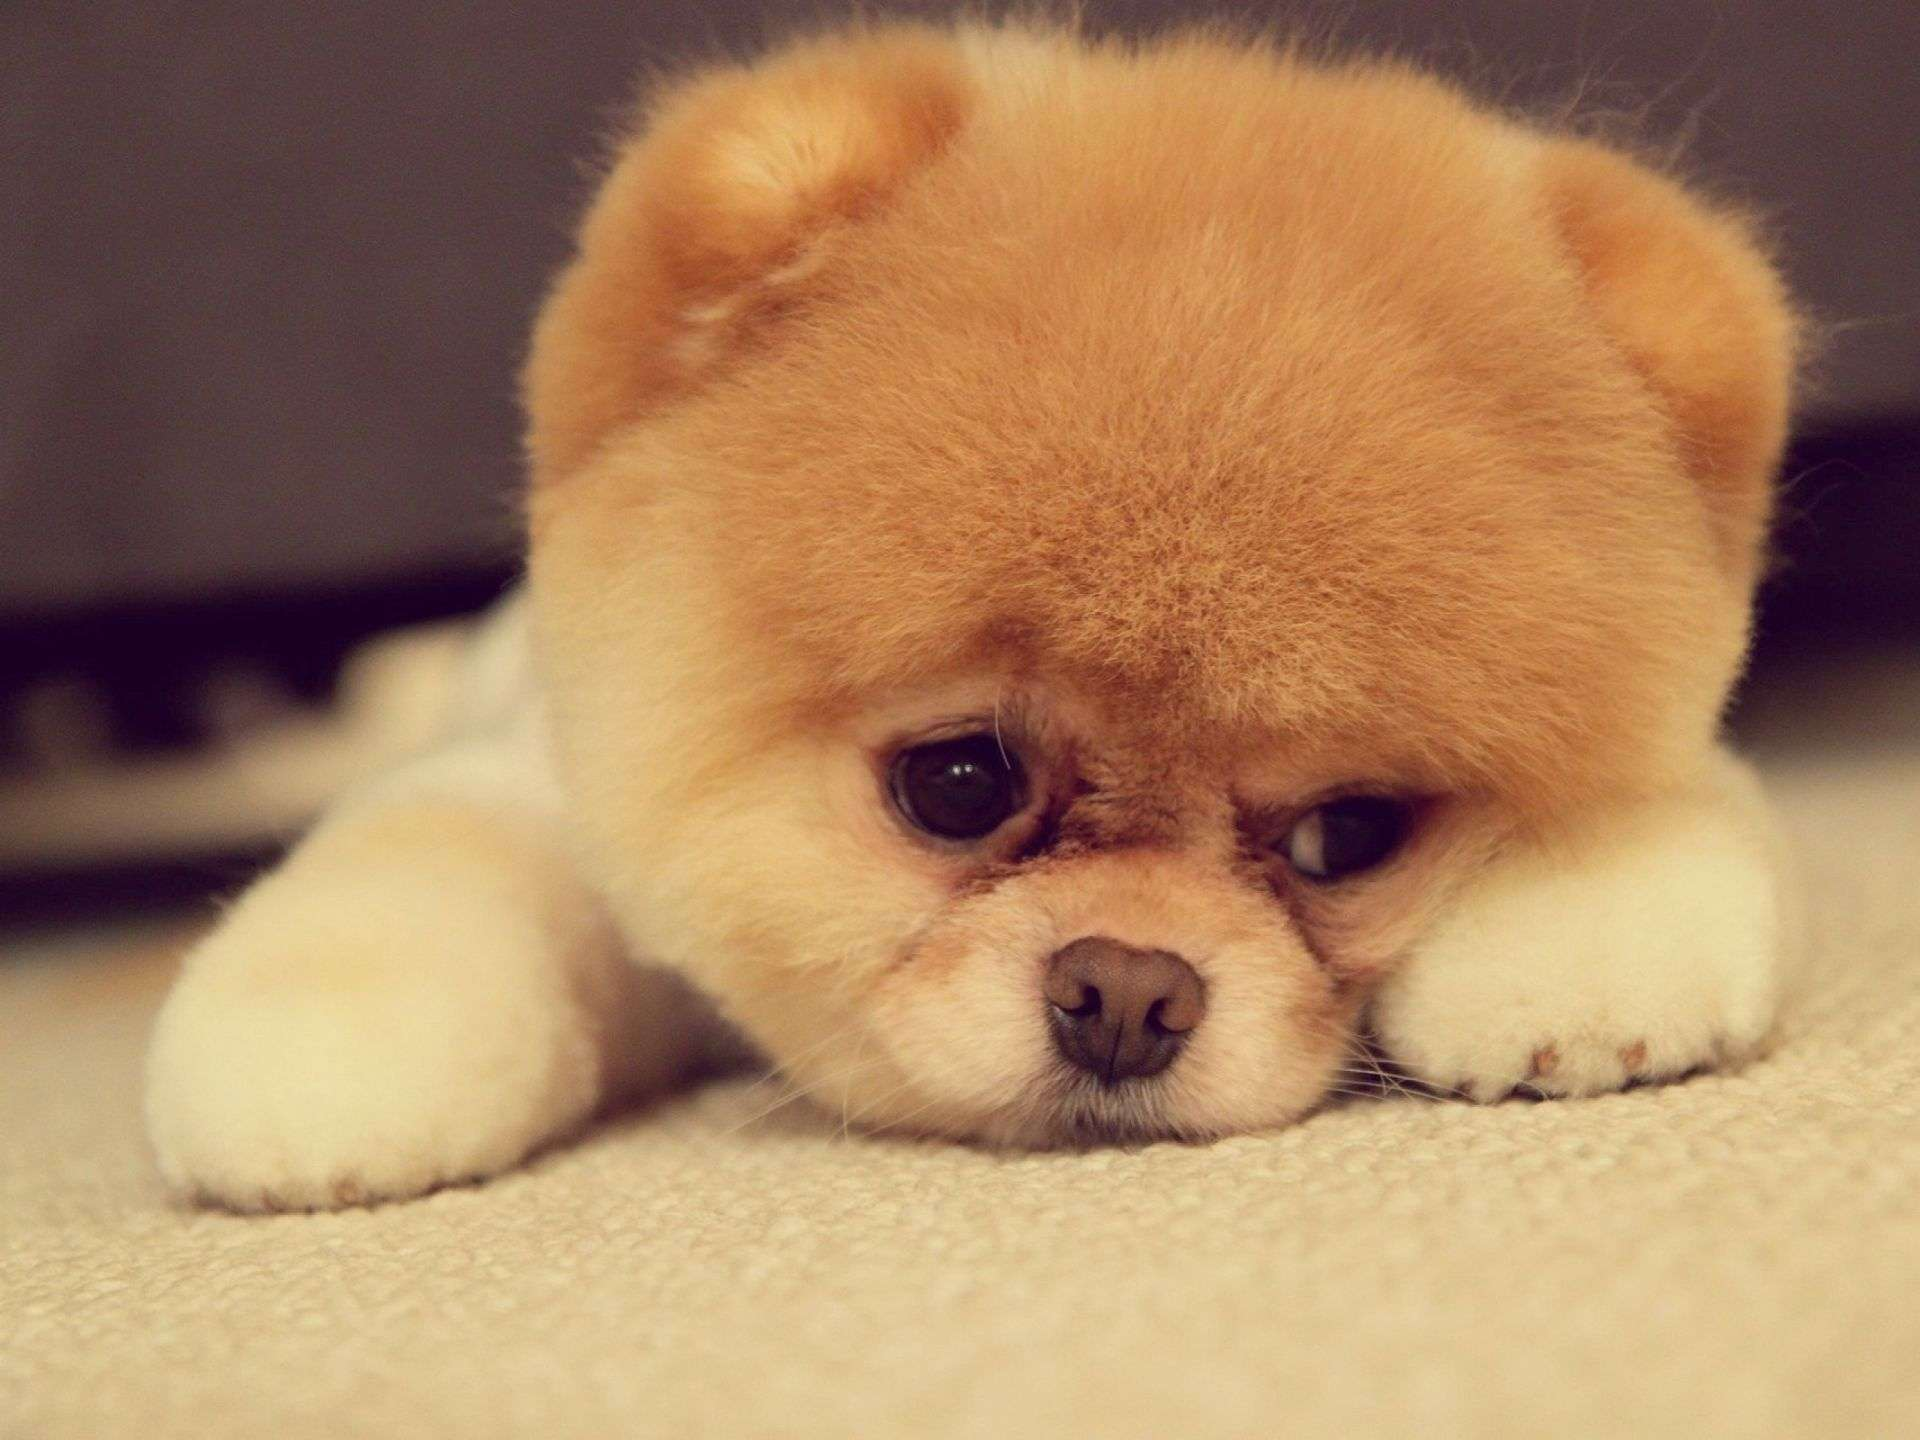 Sad Puppy Face Wallpaper HD Widescreen